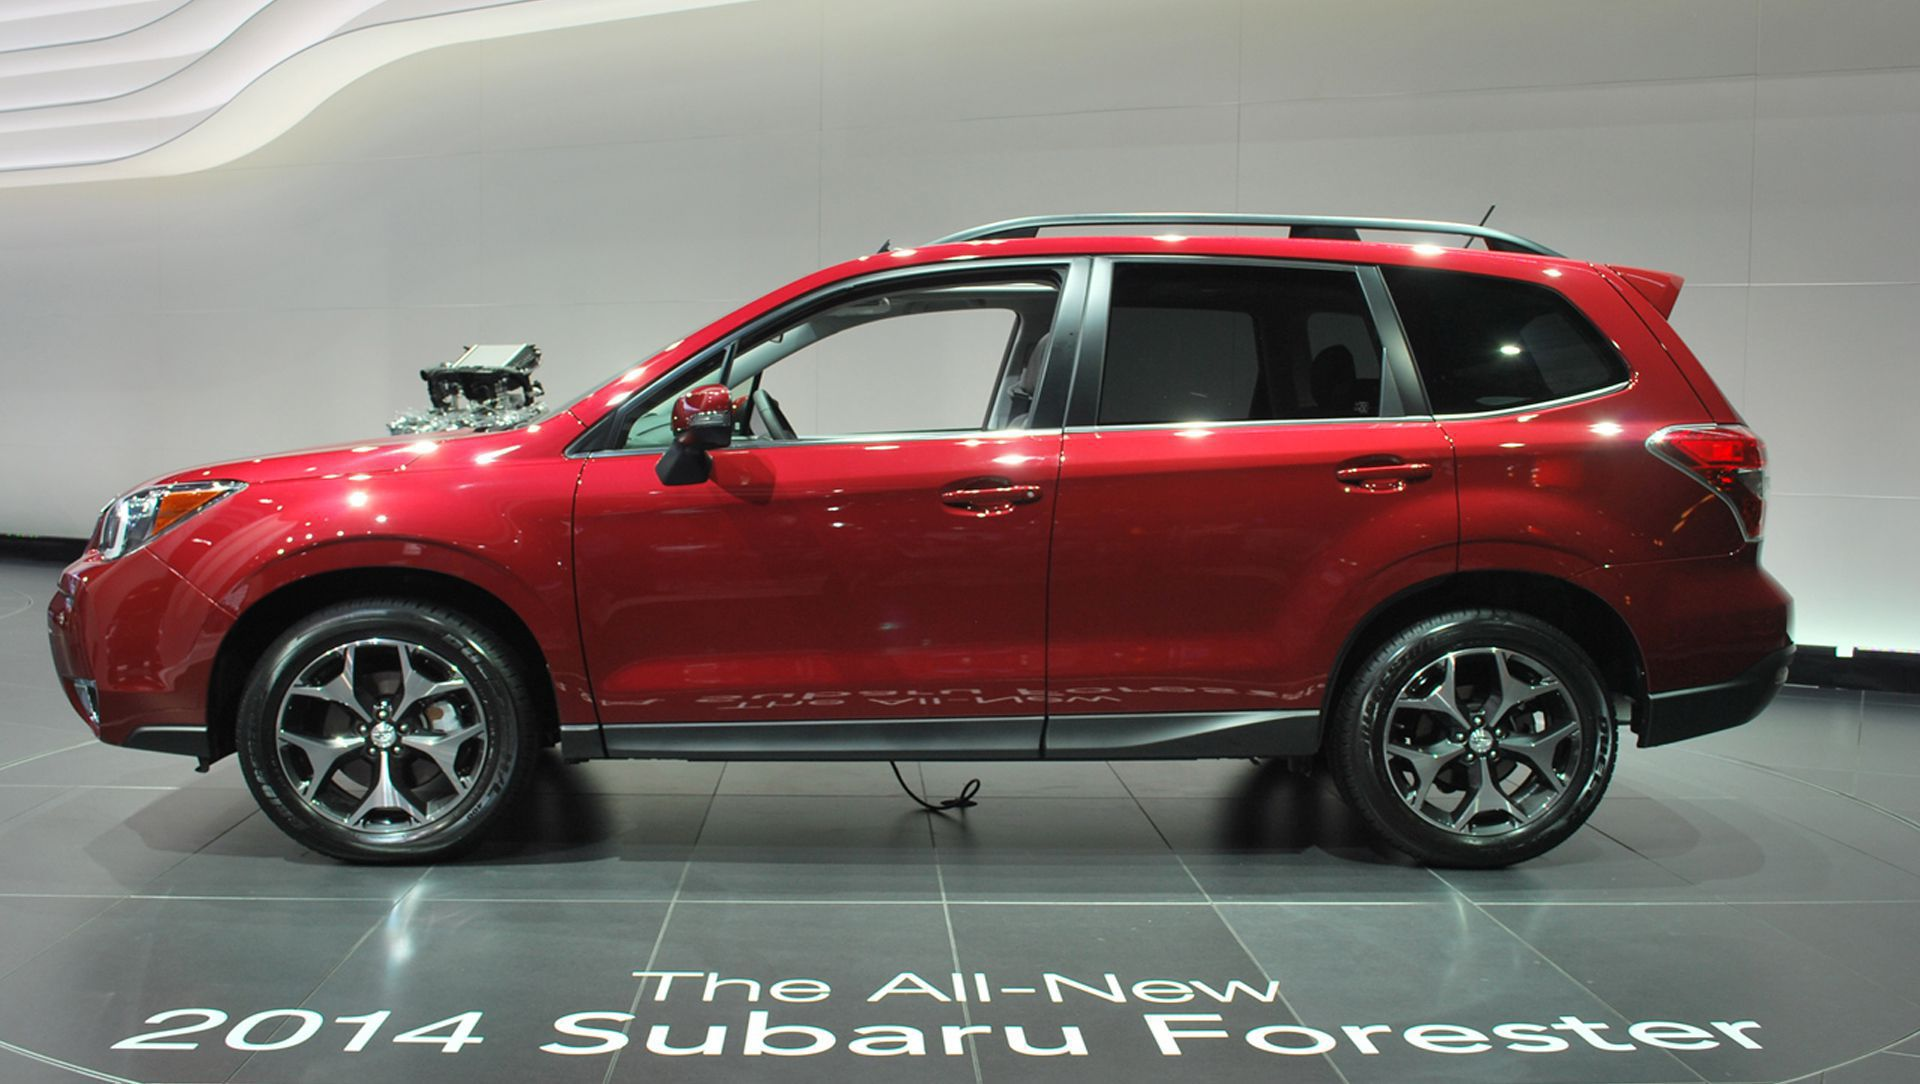 Win a Subaru in the Forester Family Rally